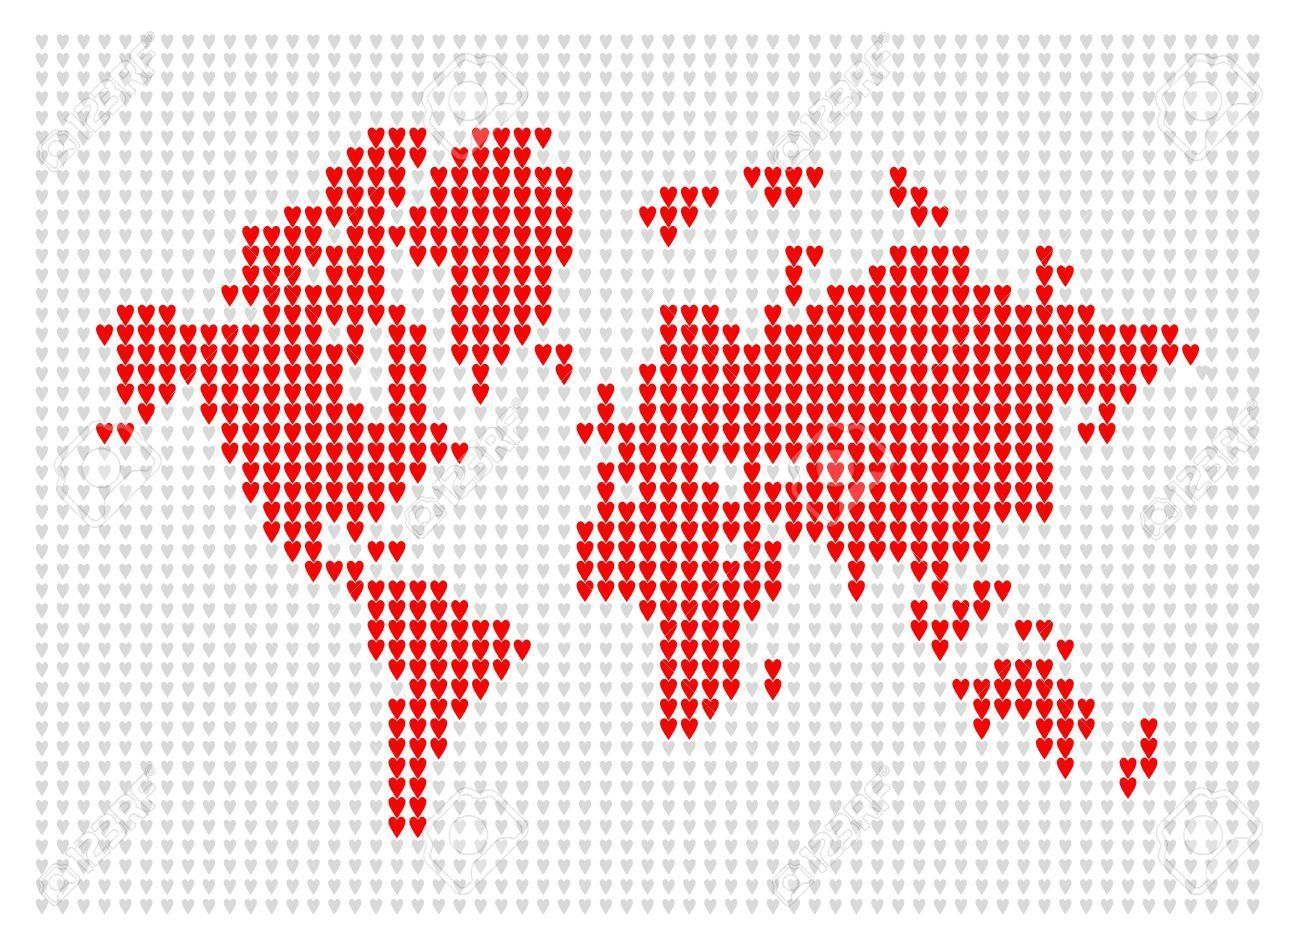 World Map Knitted For Your Design Royalty Free Cliparts